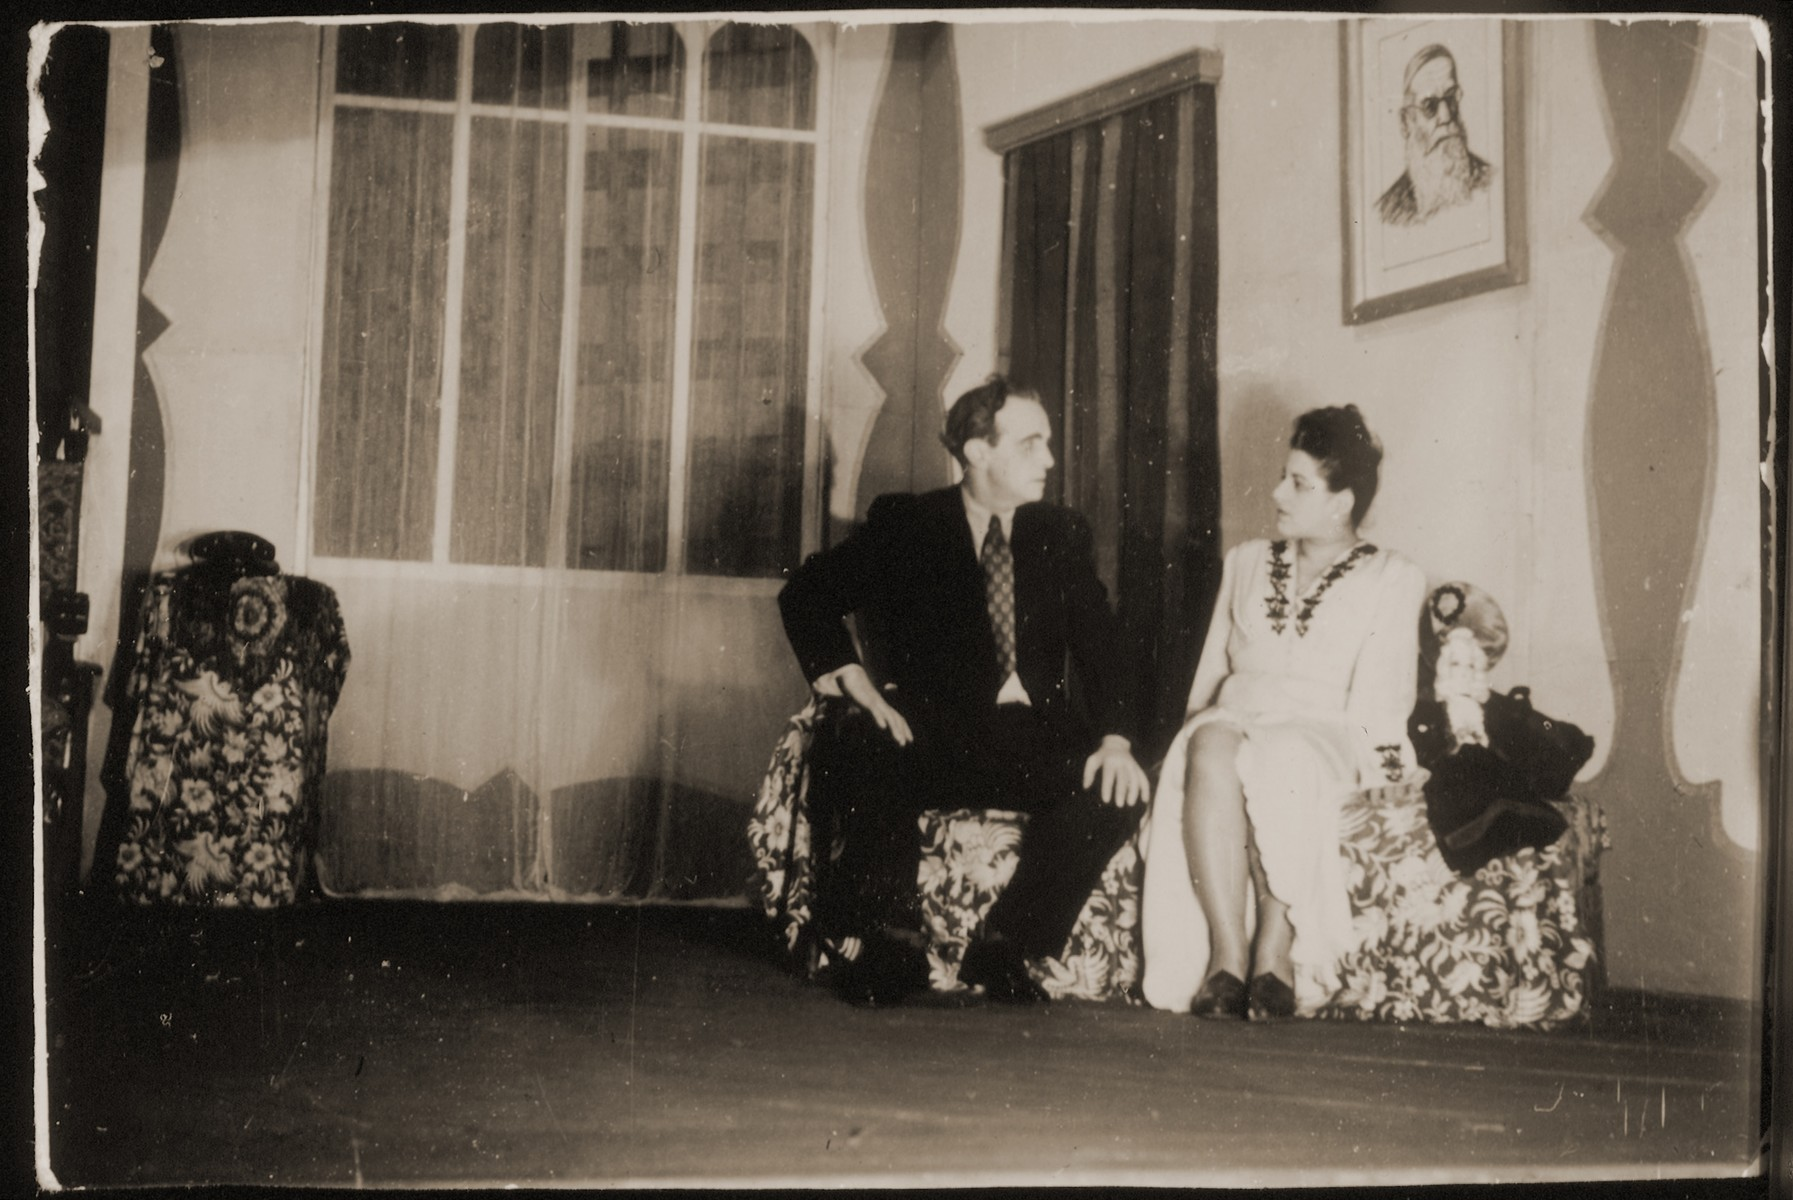 """Jakob Fischer and his leading lady in the production """"Telegrame!"""" at the Jidischer Folks Teater.  Theatrical troupes revived the works of the prewar Yiddish stage during the postwar DP period from 1945-1951."""